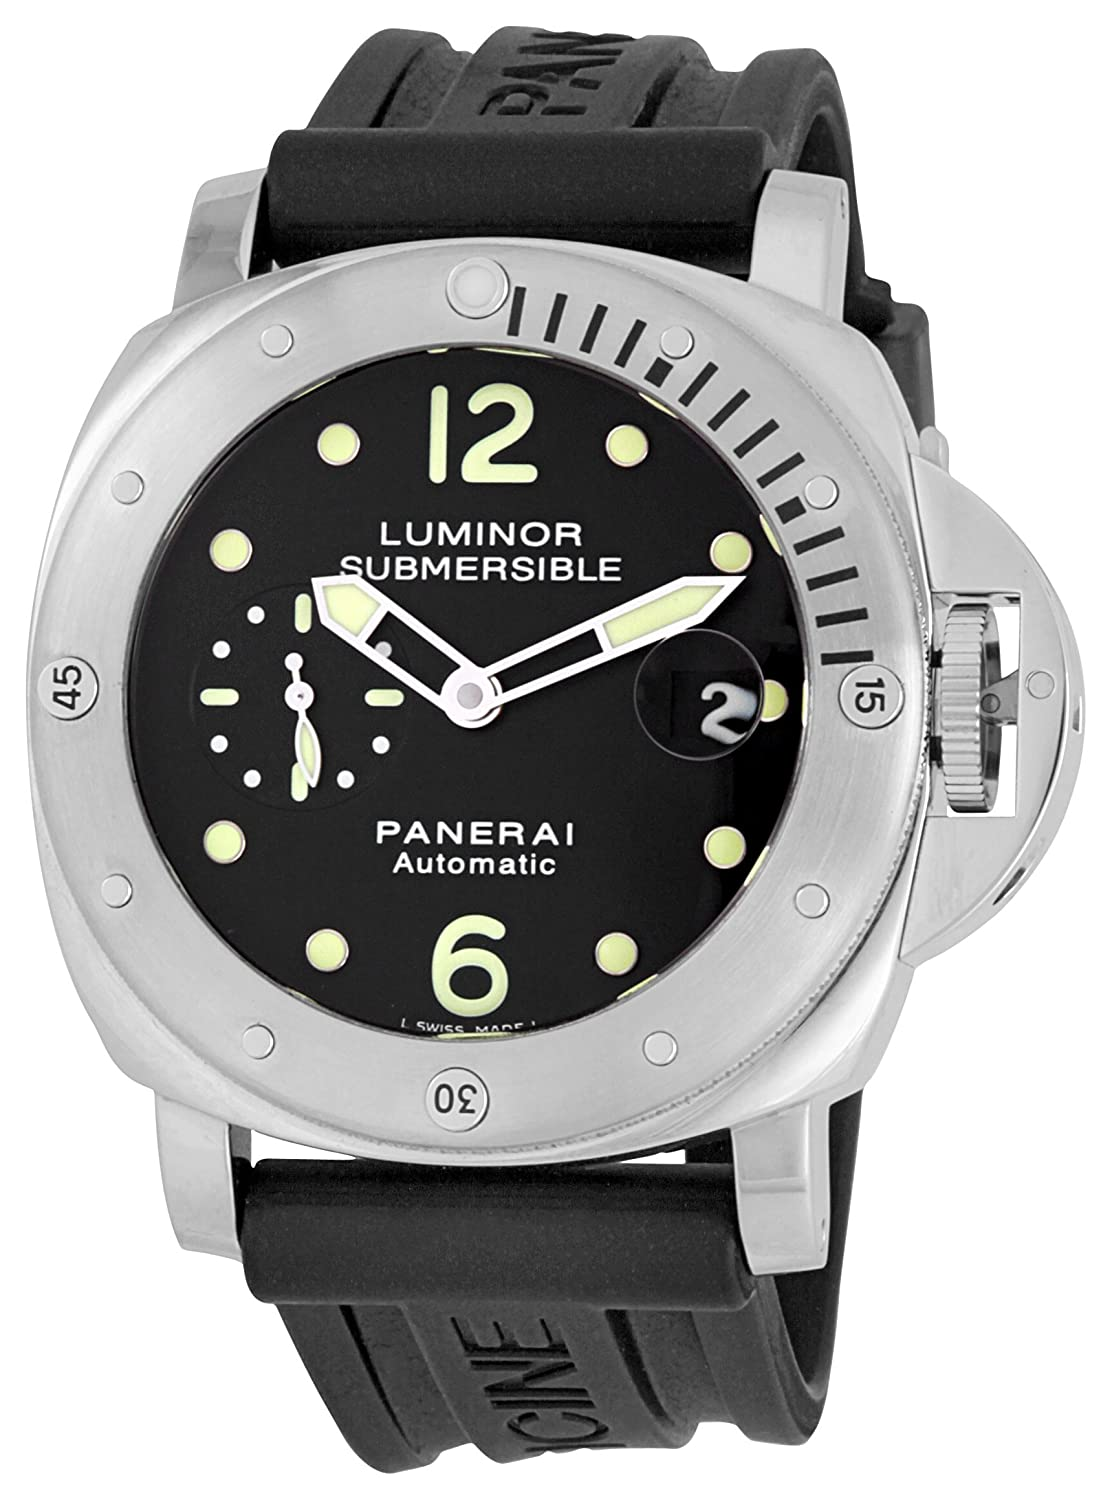 a6ac088aa62 Amazon.com  Panerai Men s M00024 Luminor Submersible Stainless Steel Watch   Watches